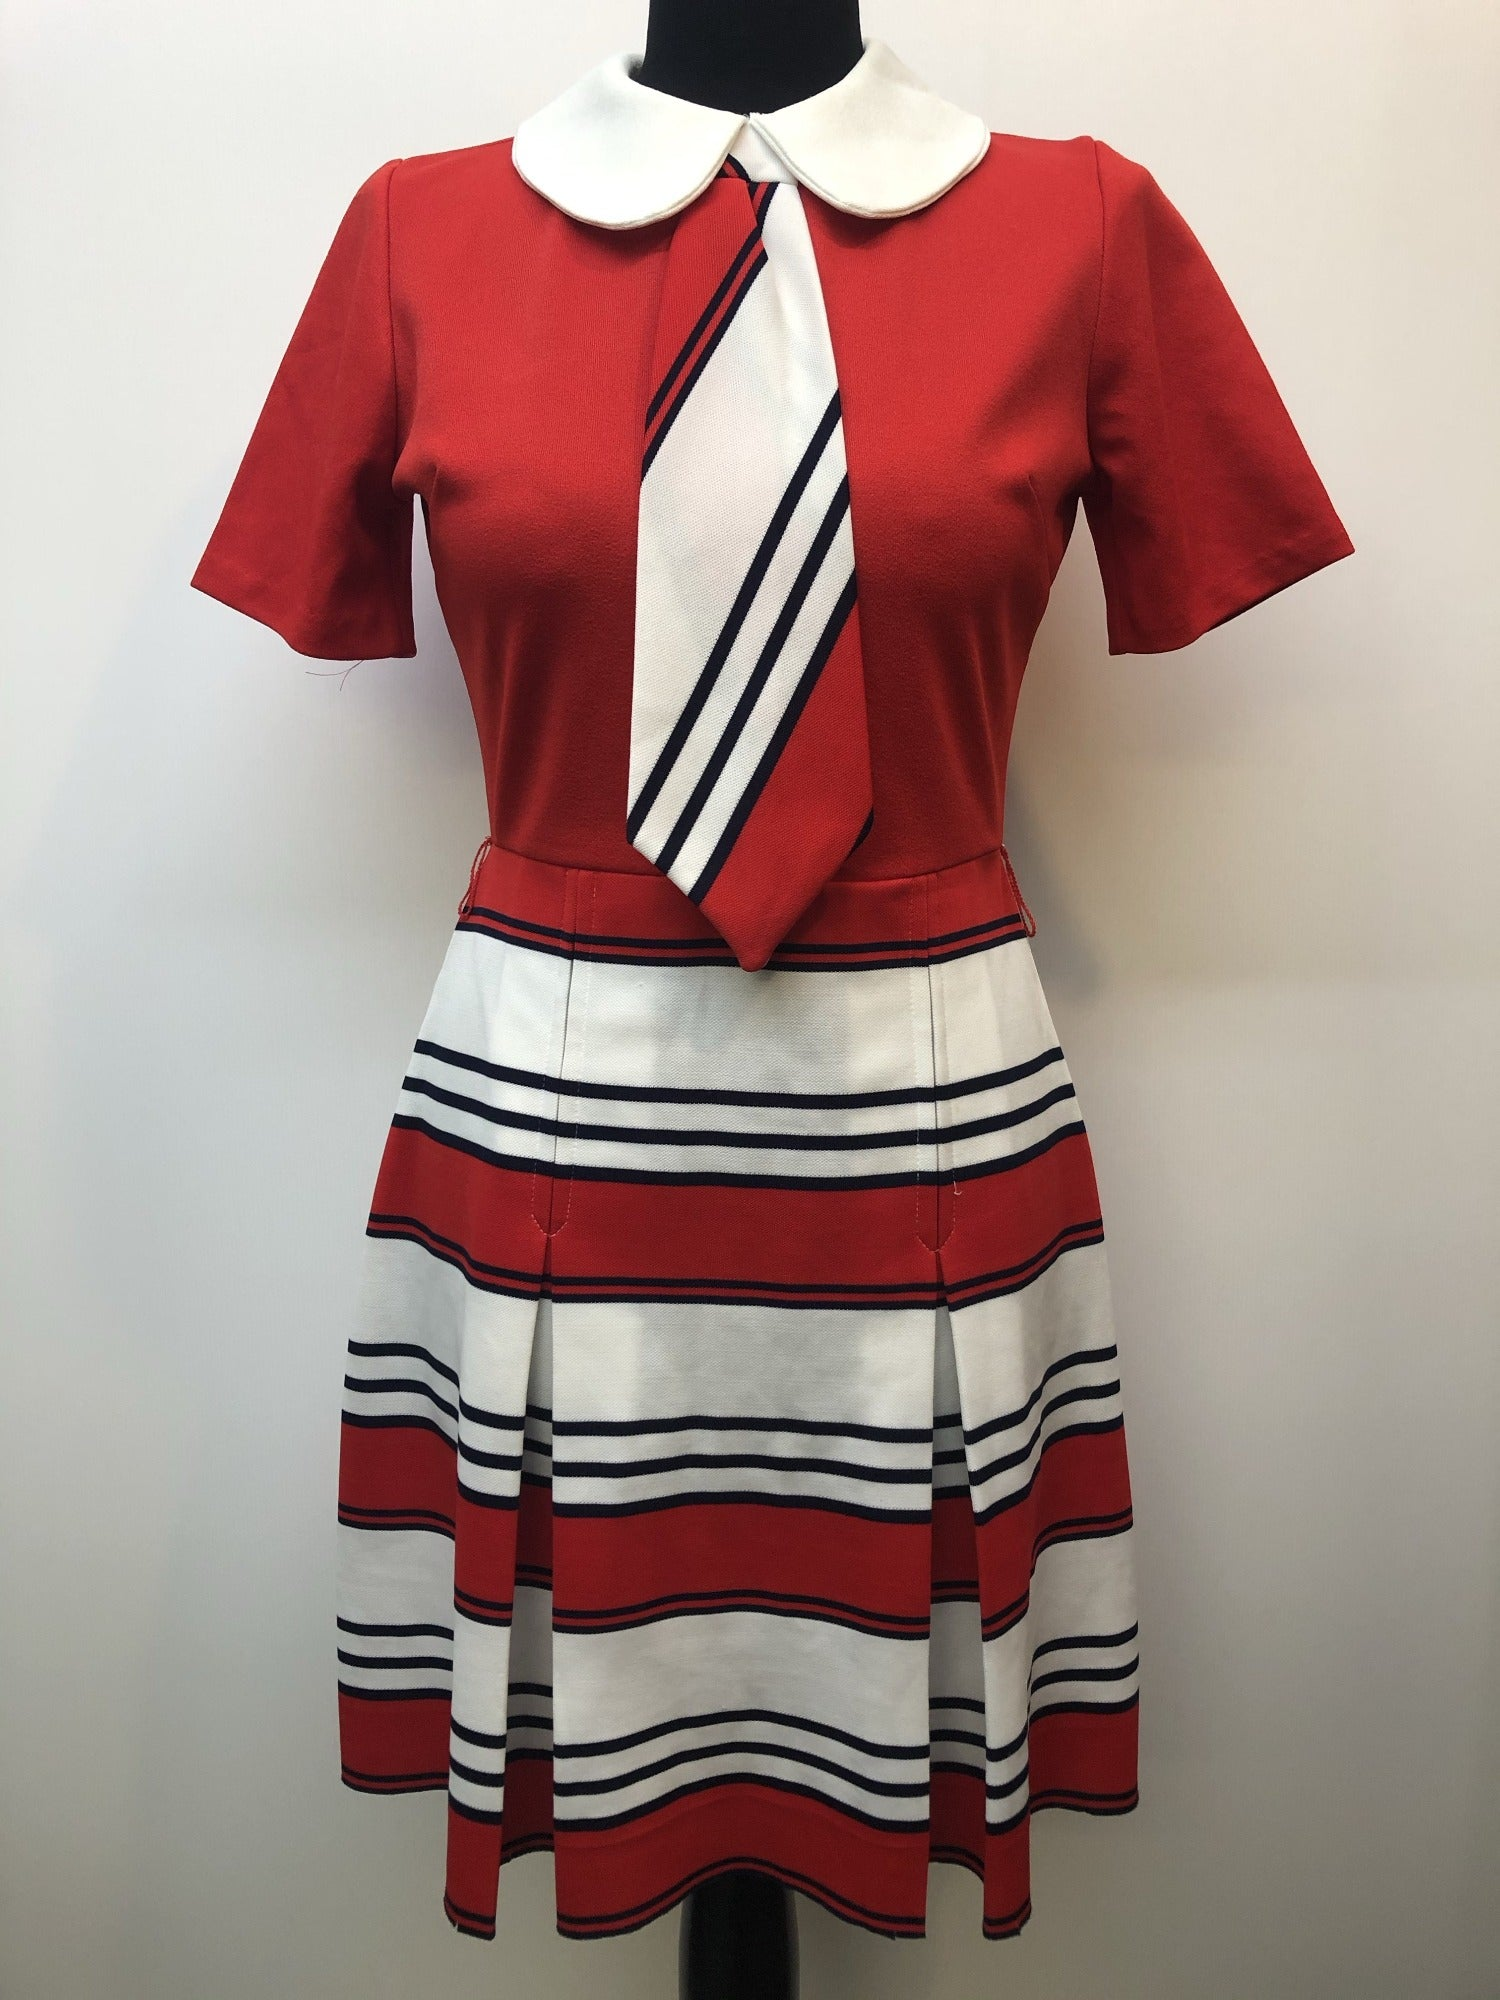 womens  white  vintage  tie neck  retro  Red  Navy stripe  MOD  mini dress  dress  collared dress  collar  60s  1960s  10 urban village vintage